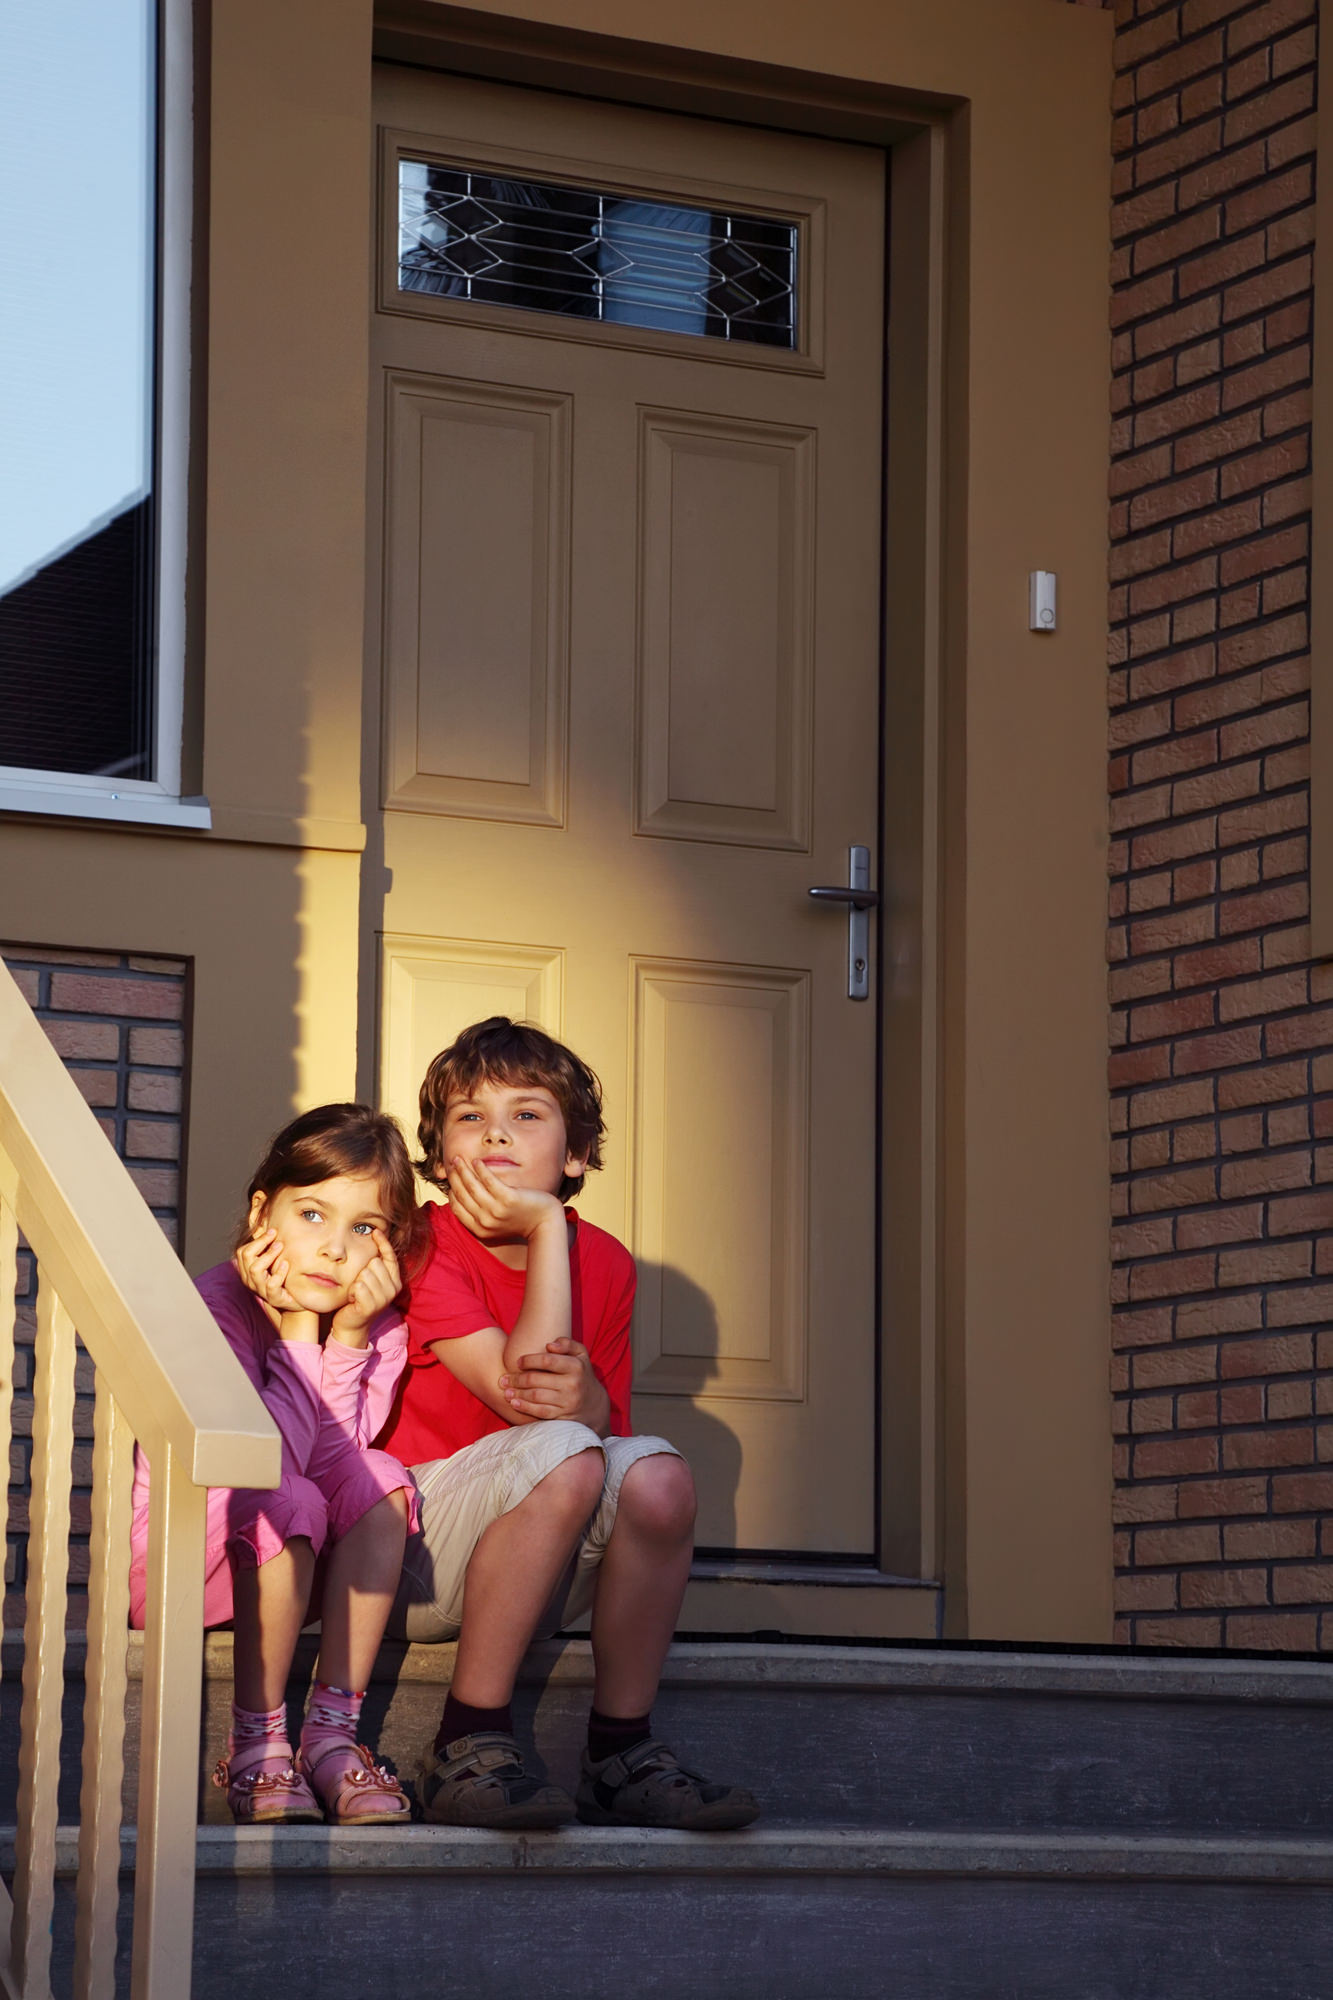 Brother and sister sit on stairs near door and look into distanc